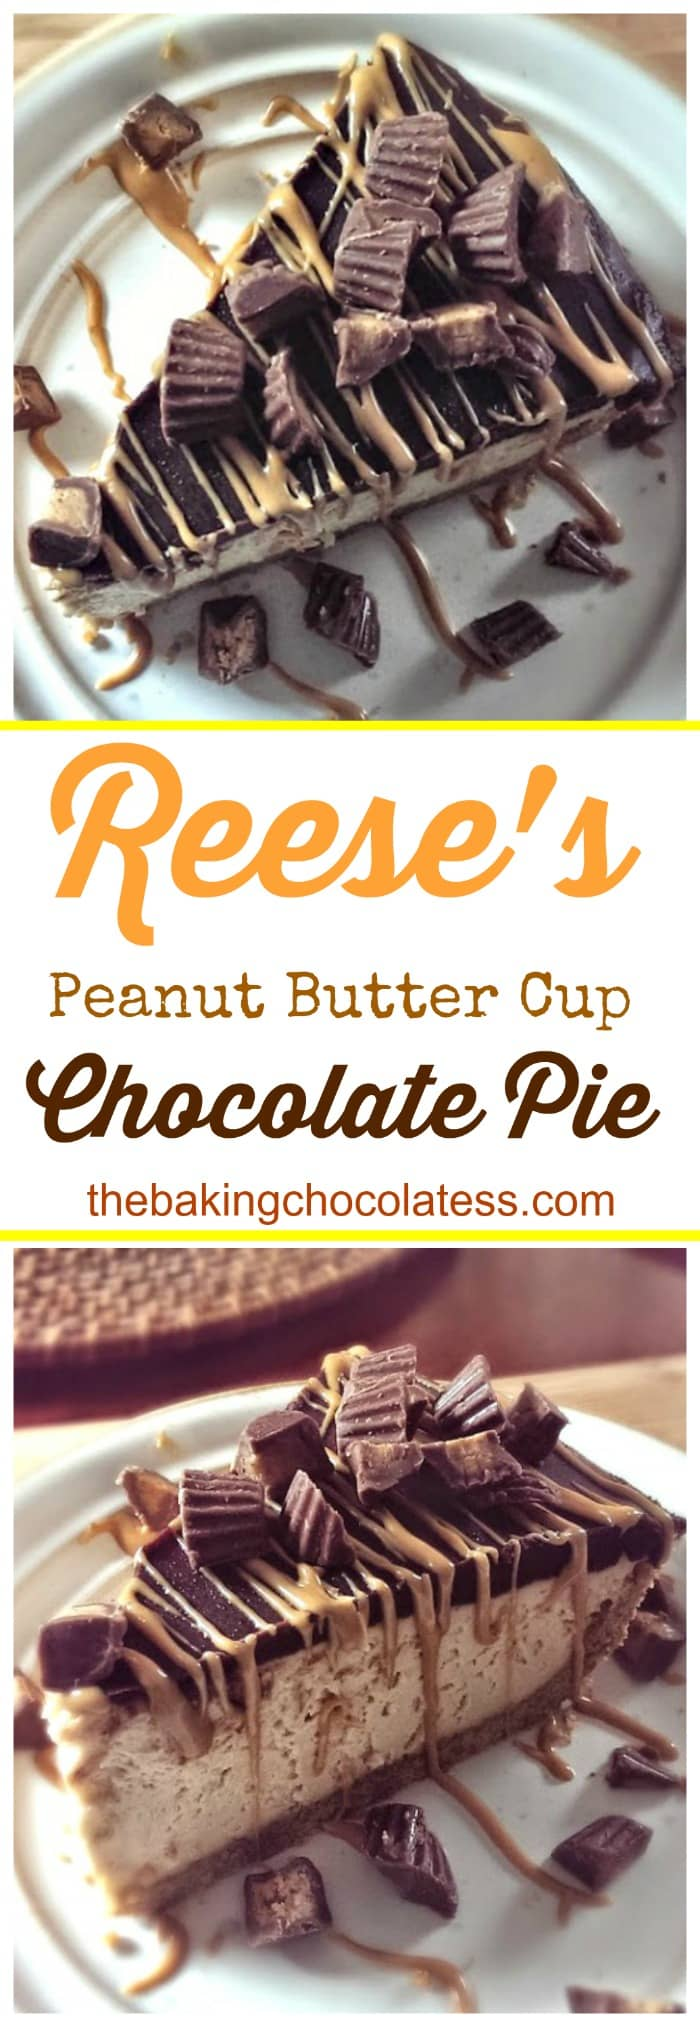 Reese's Peanut Butter Cup Chocolate Pie – It's Phenomenal!